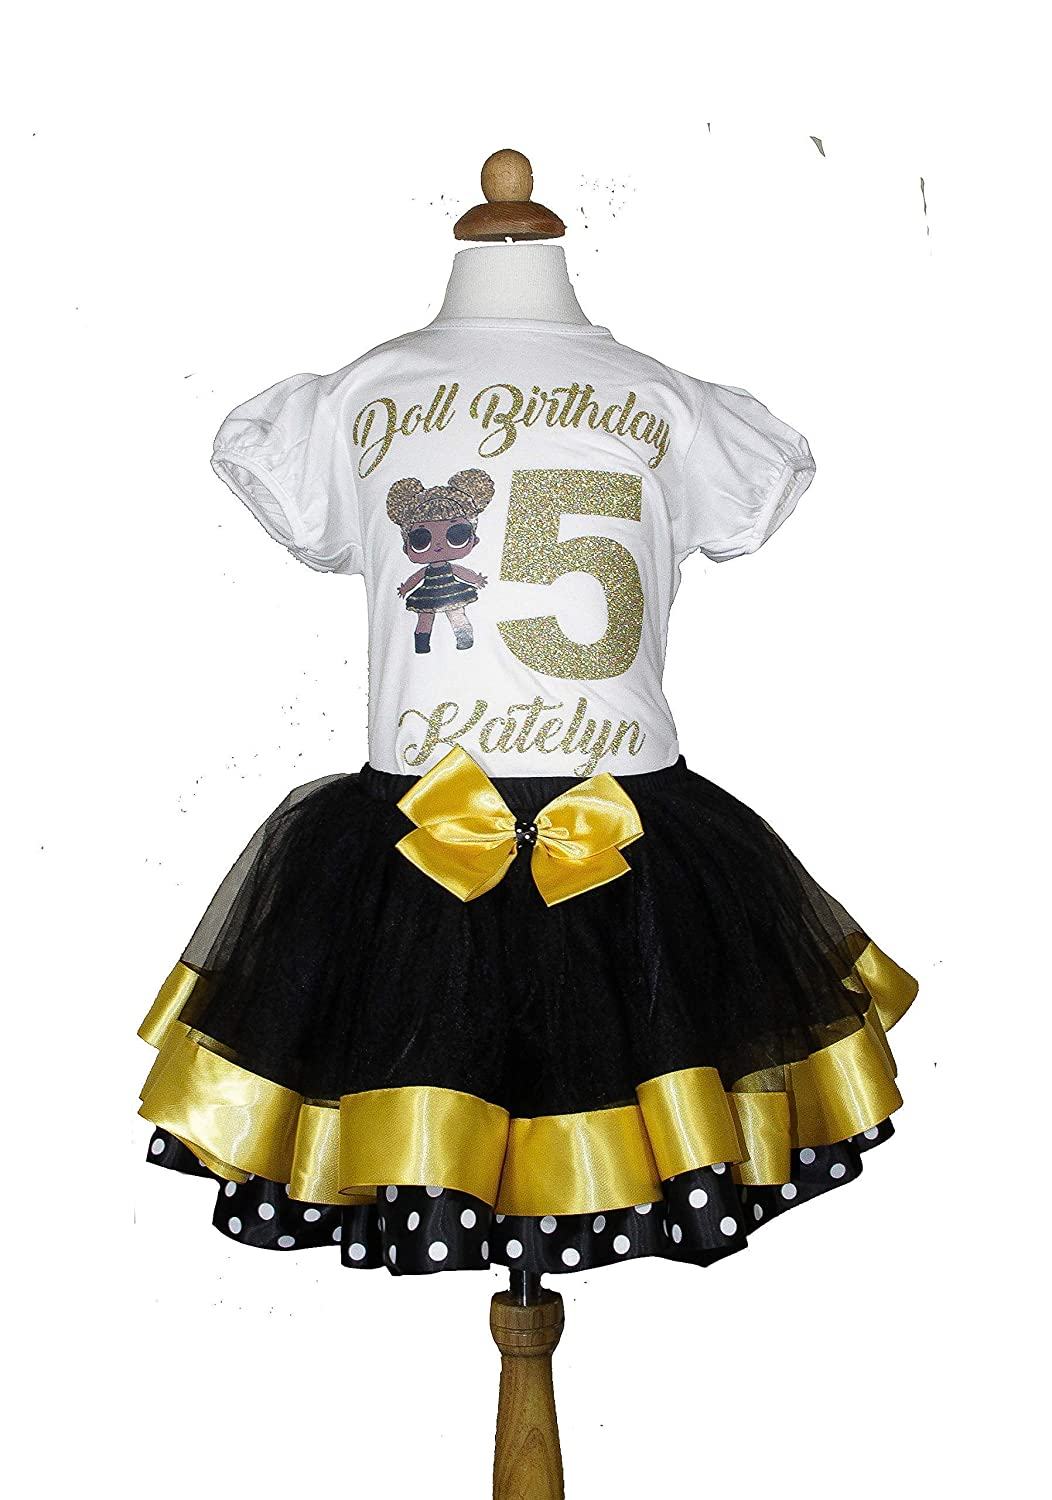 lol birthday outfit birthday outfits for girls L.o.l doll birthday outfit queen bee l.o.l doll lol queen bee queen bee birthday l.o.l surprise birthday shirt